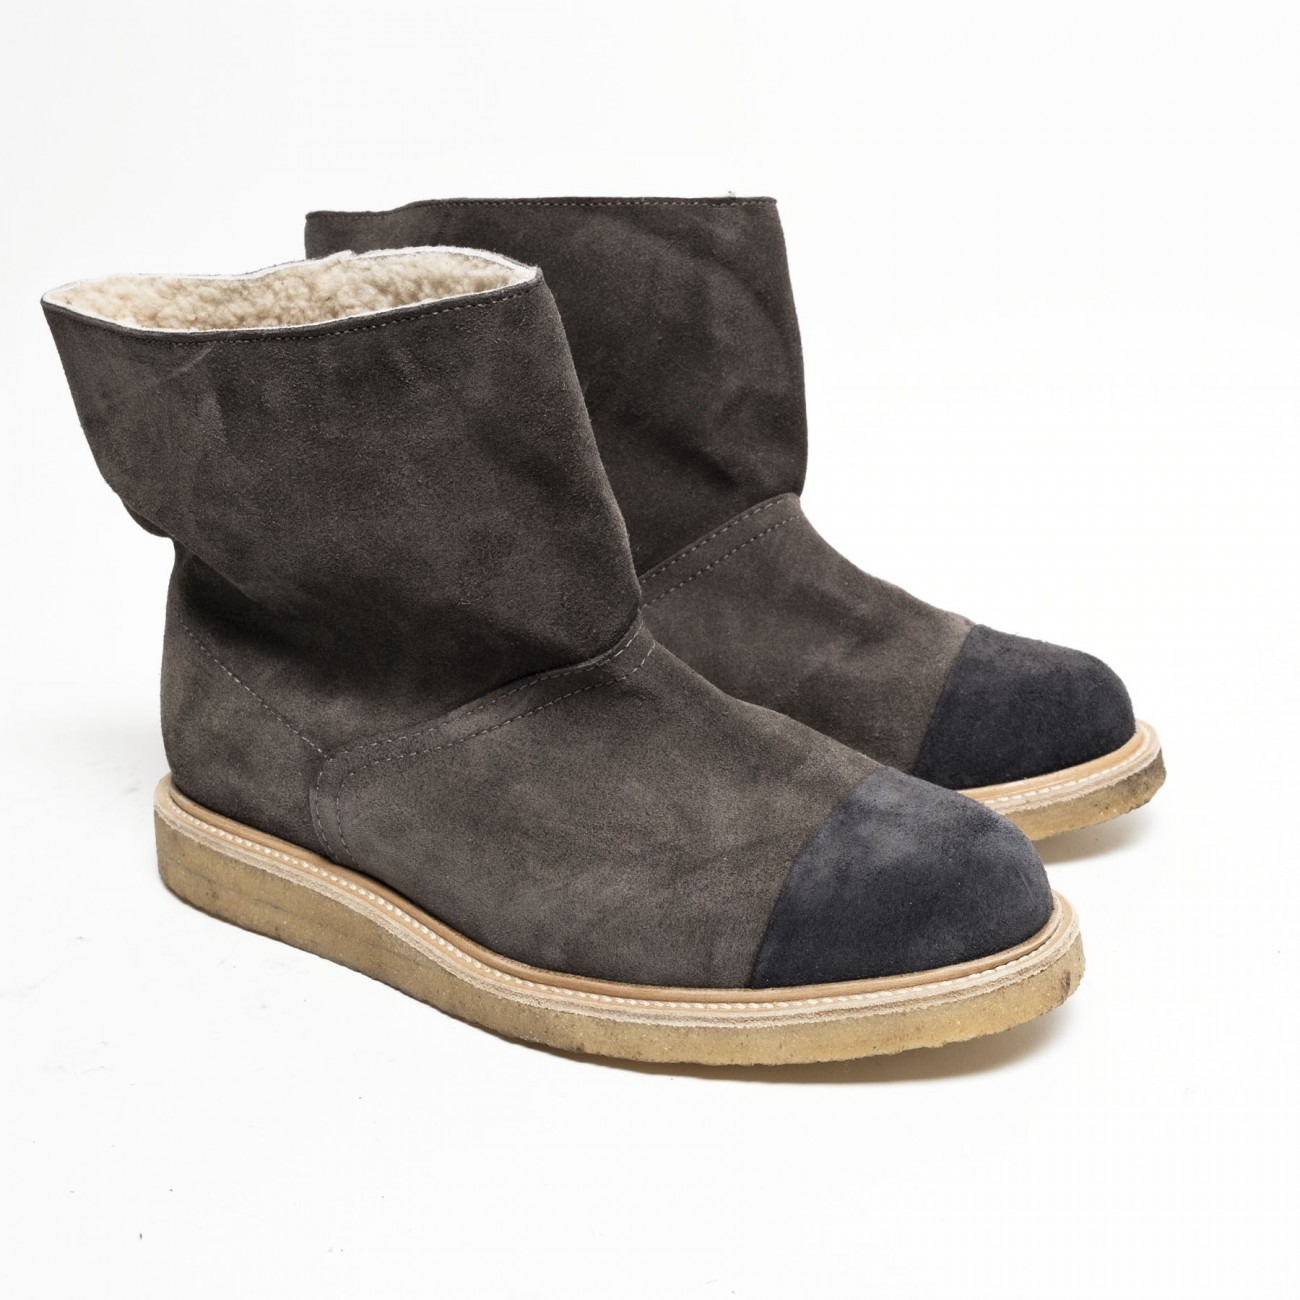 Cammi wool suede brown - Size 38